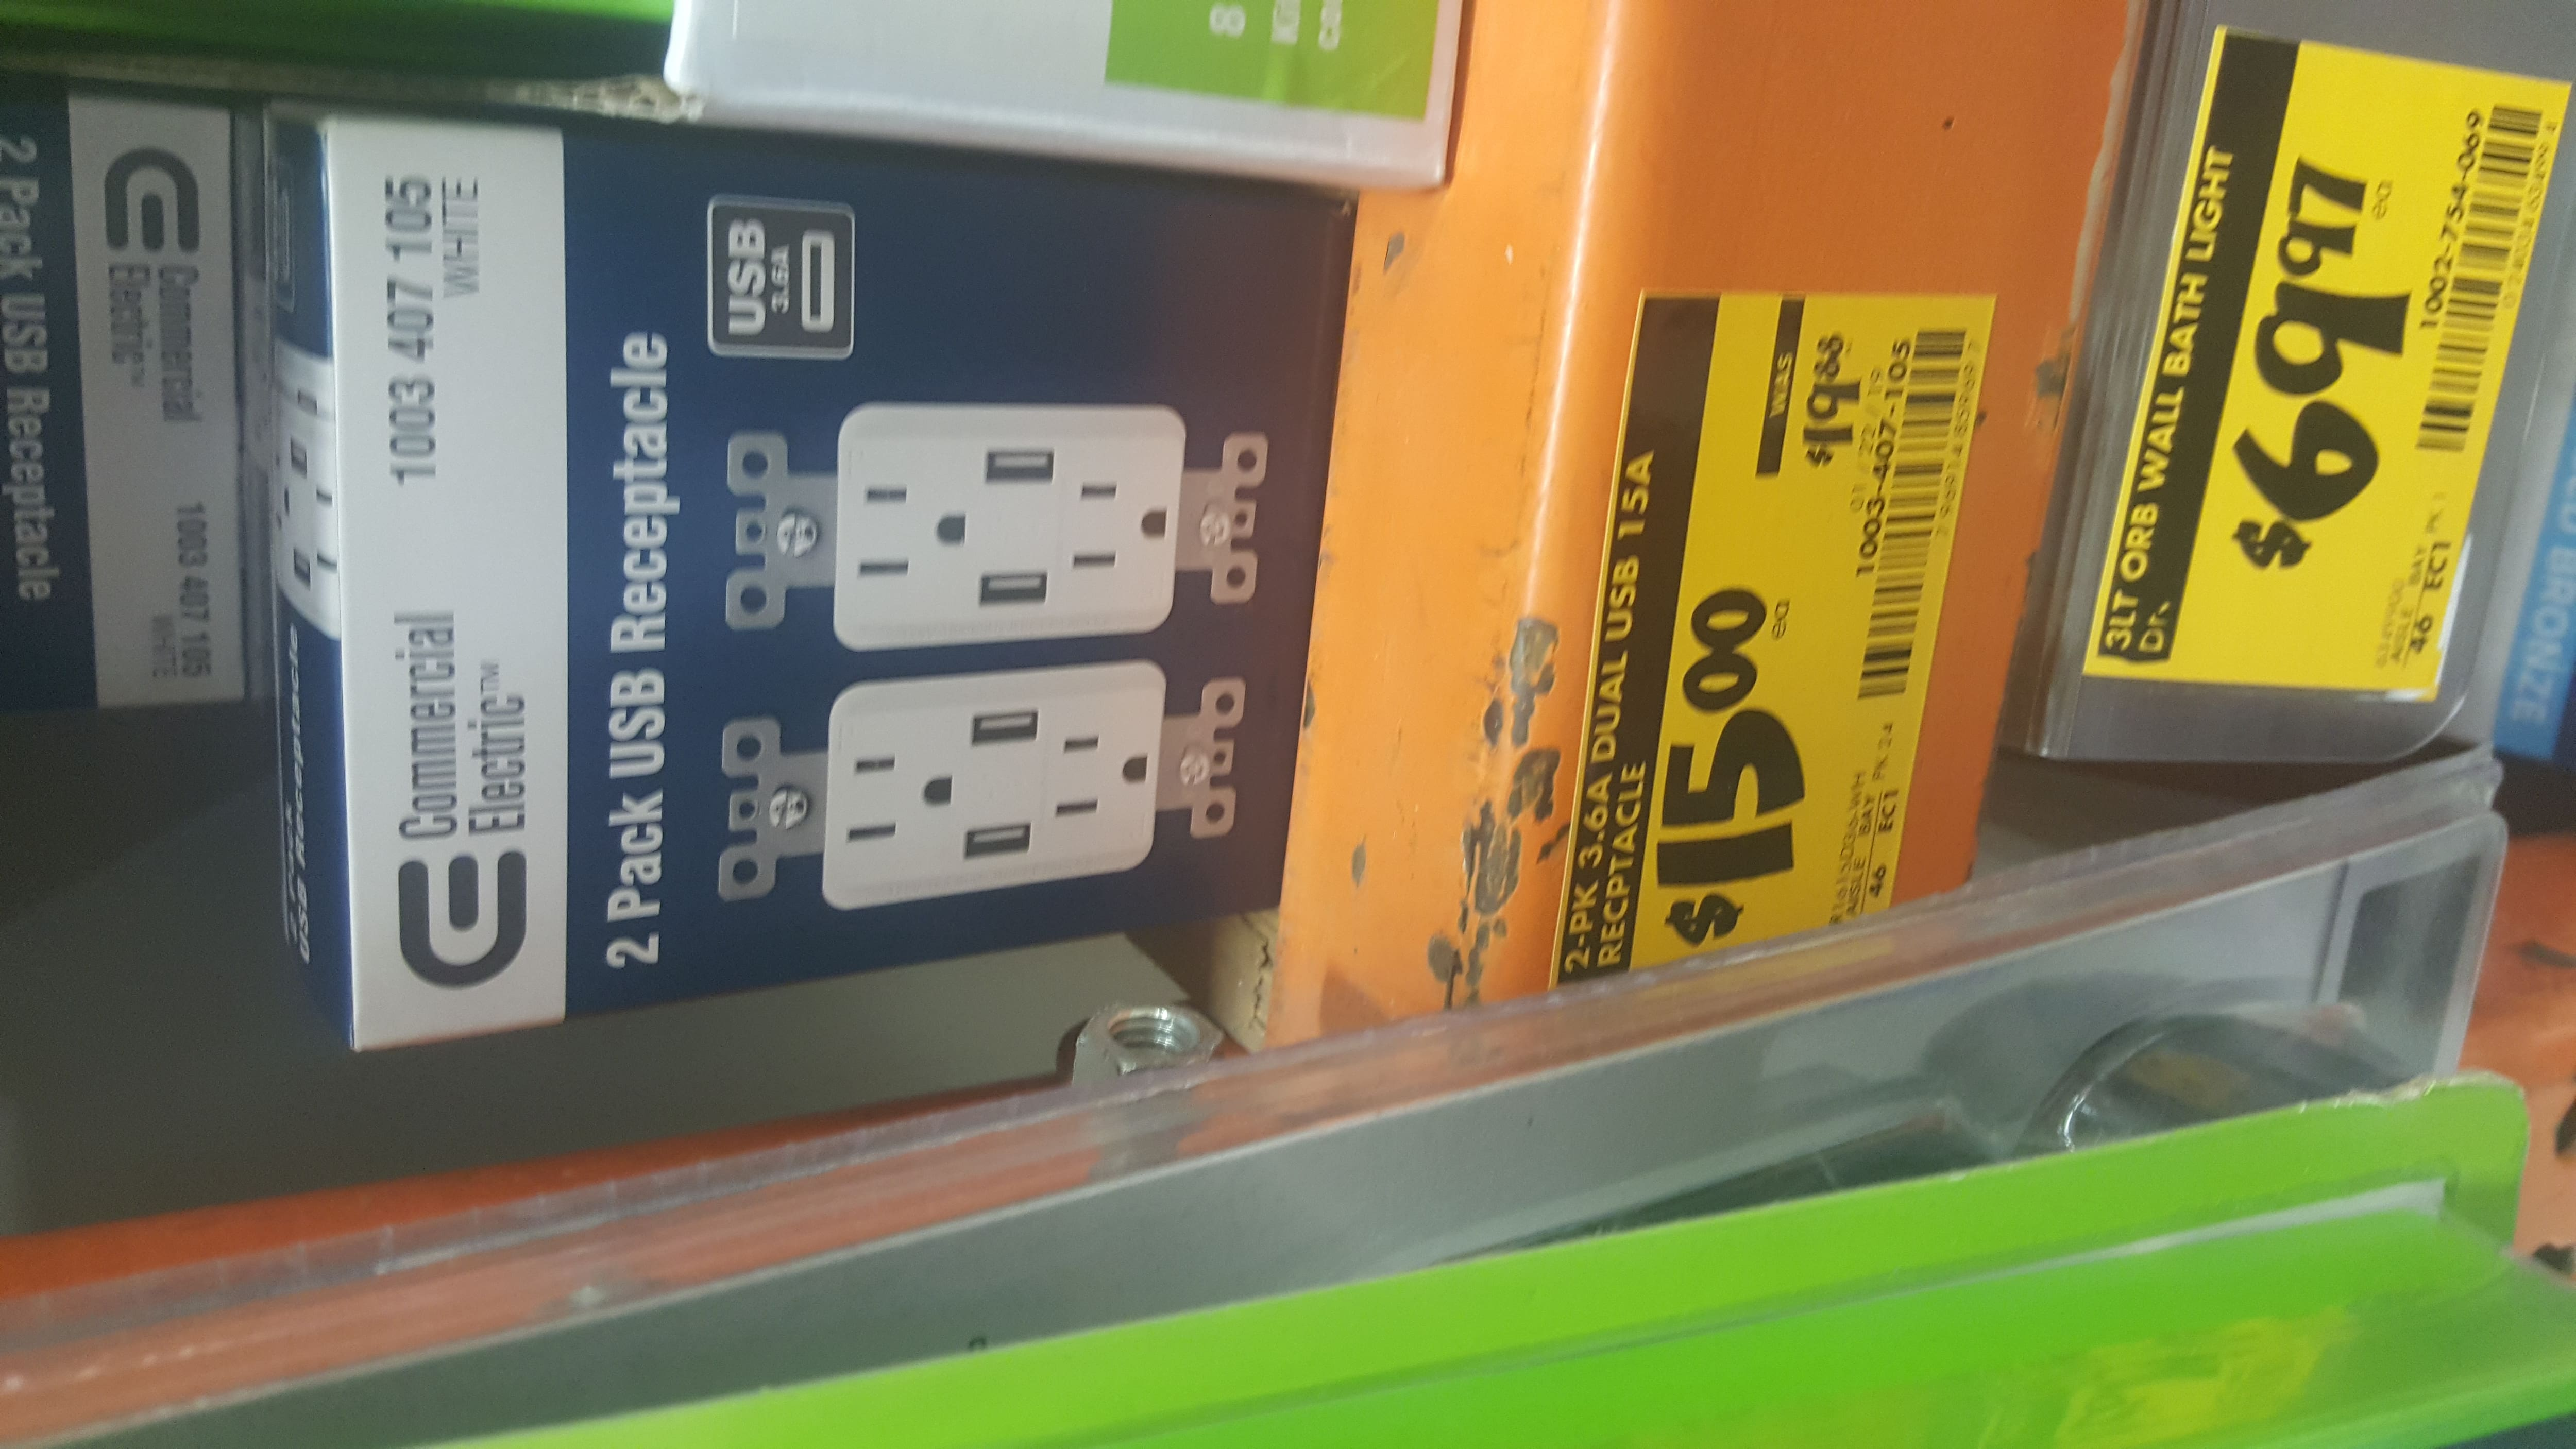 Commercial electric 2pk dual usb receptacle $15 at home depot  YMMV